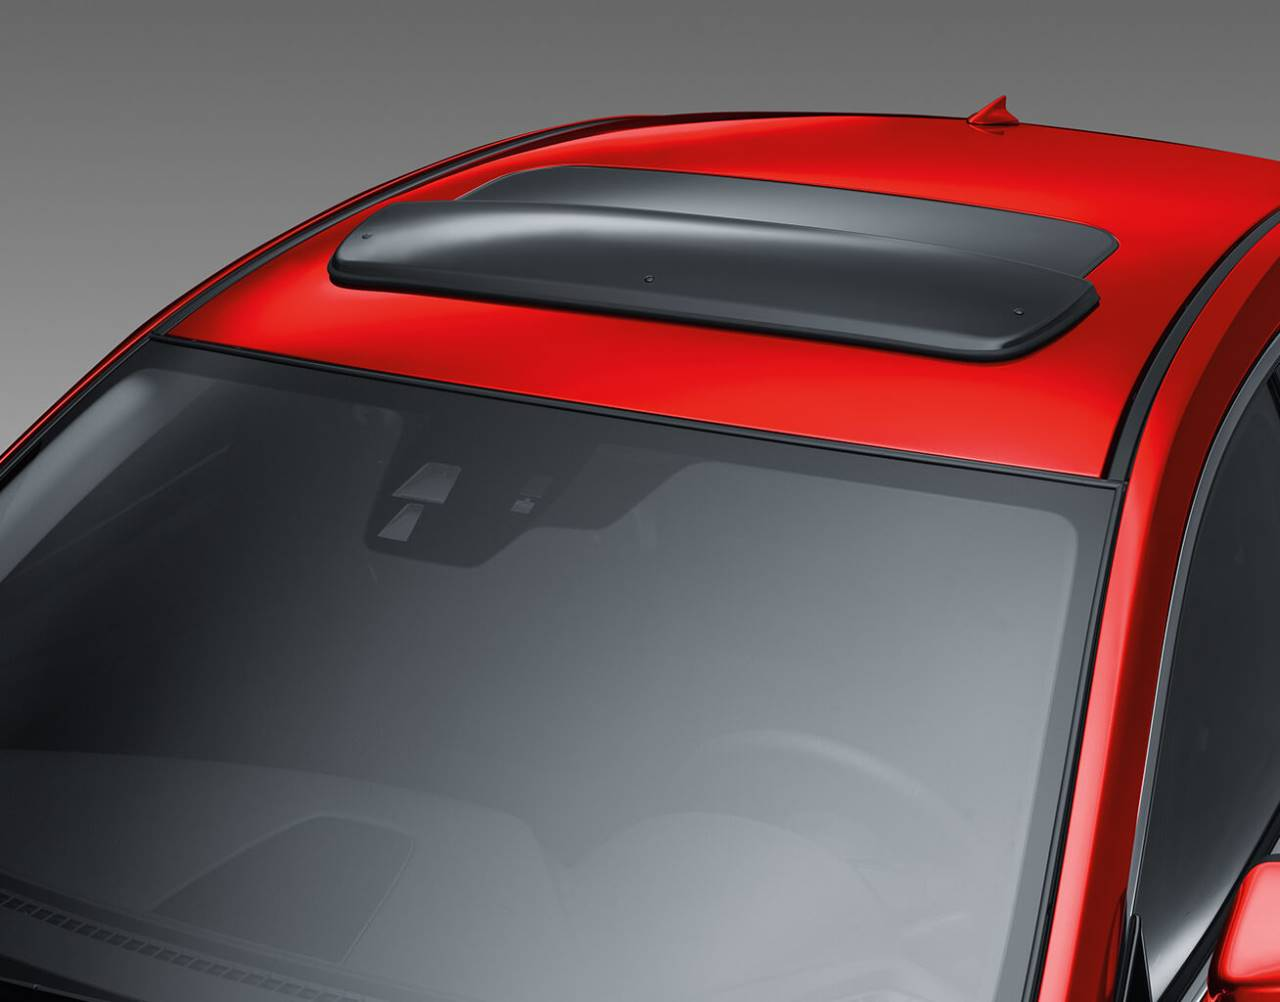 2018 Mazda6, MOONROOF WIND DEFLECTOR<sup>*</sup>